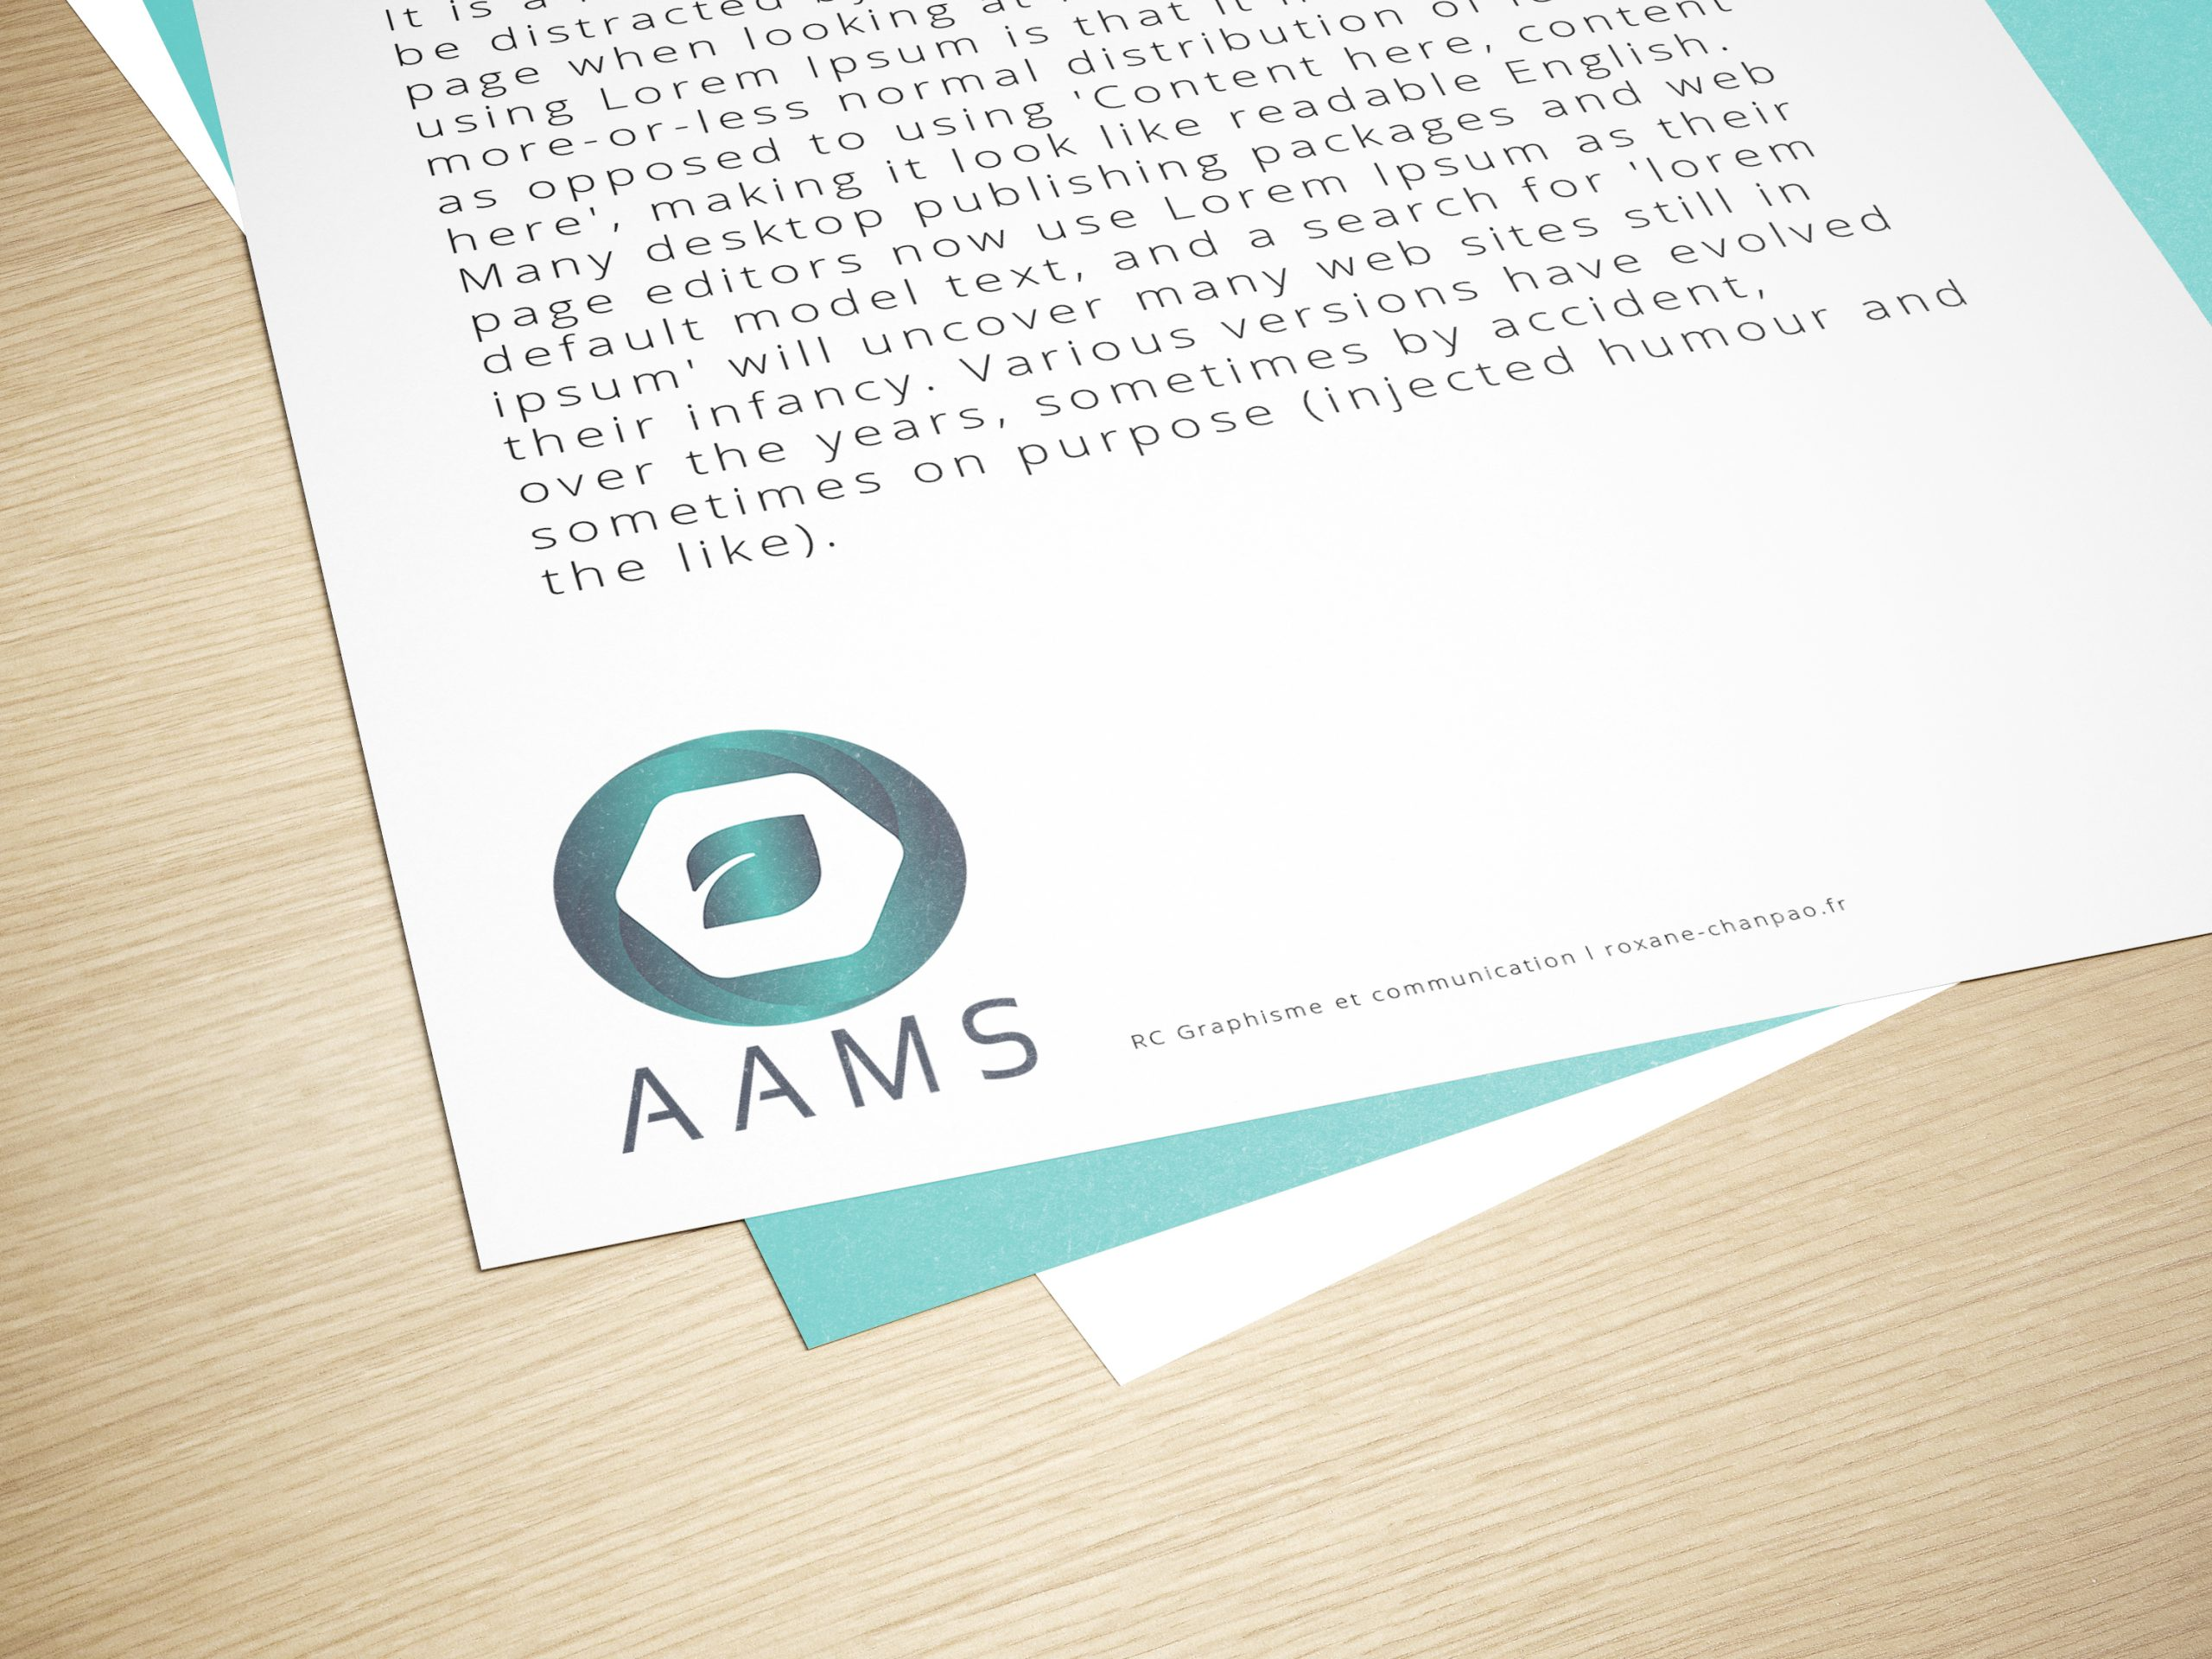 Logo AAMS - Advanced Assisted Manufacturing Solutions - by Roxane Chan Pao graphic designer à Tours